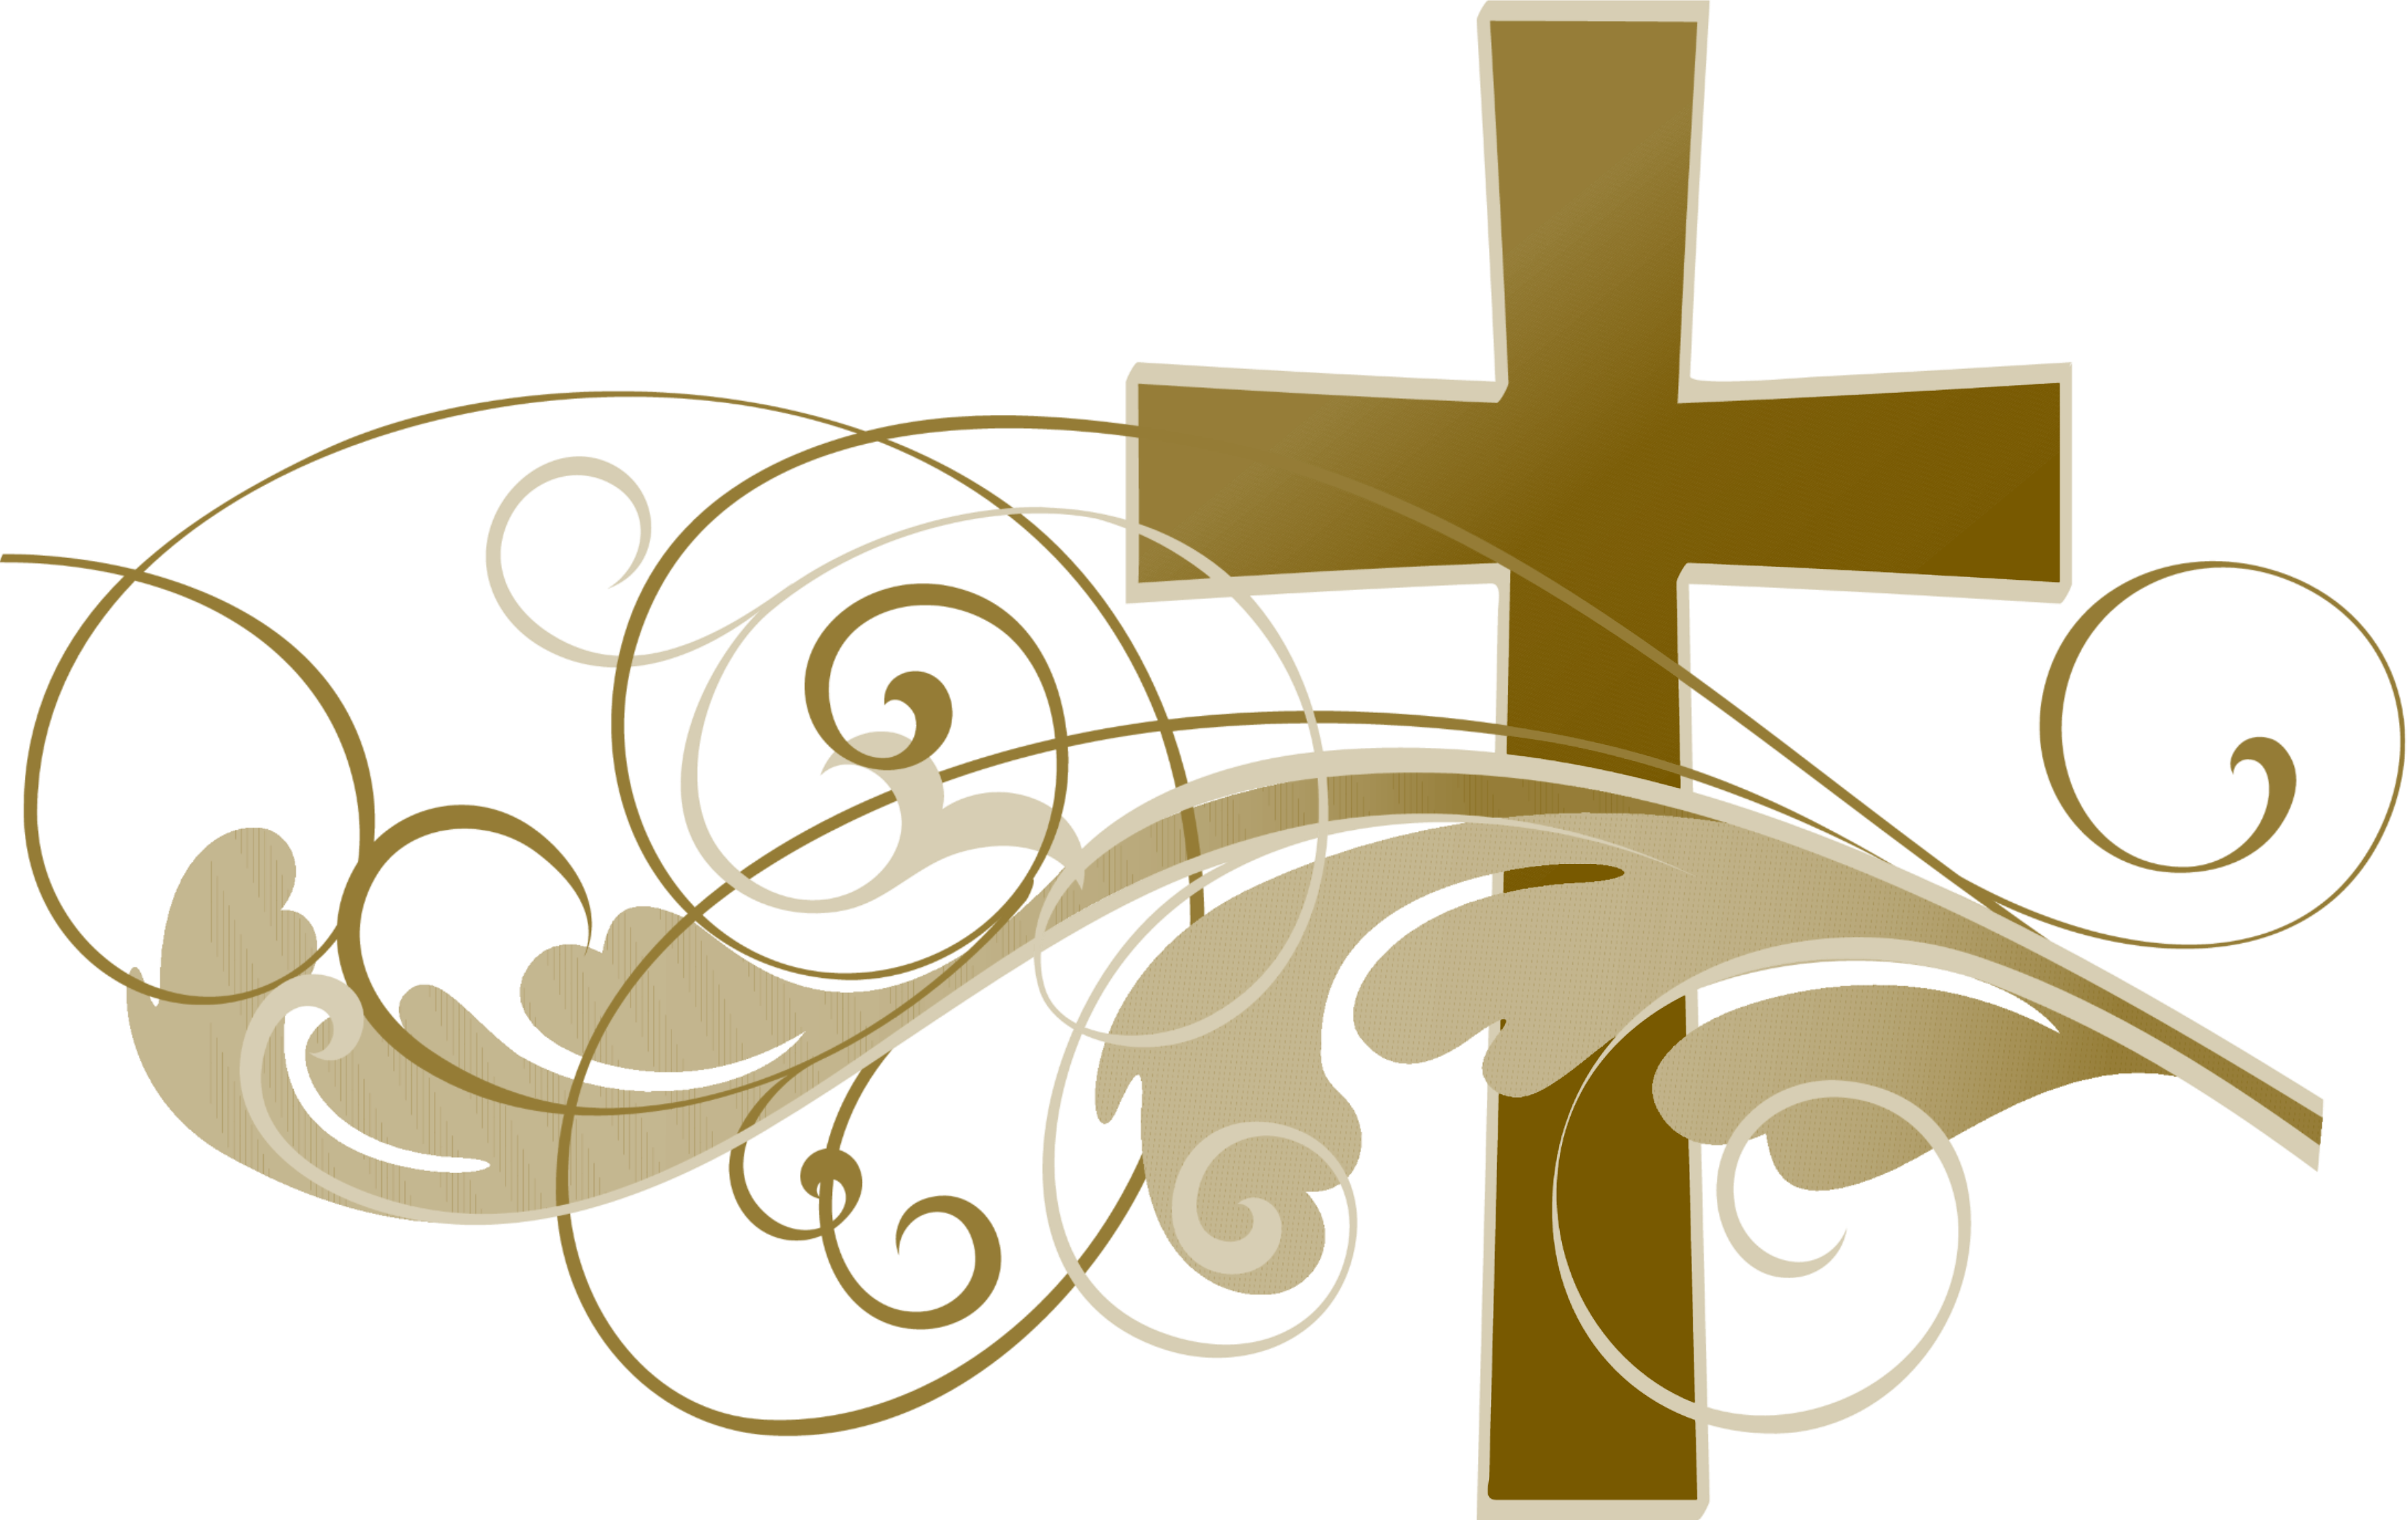 March clipart church, March church Transparent FREE for.